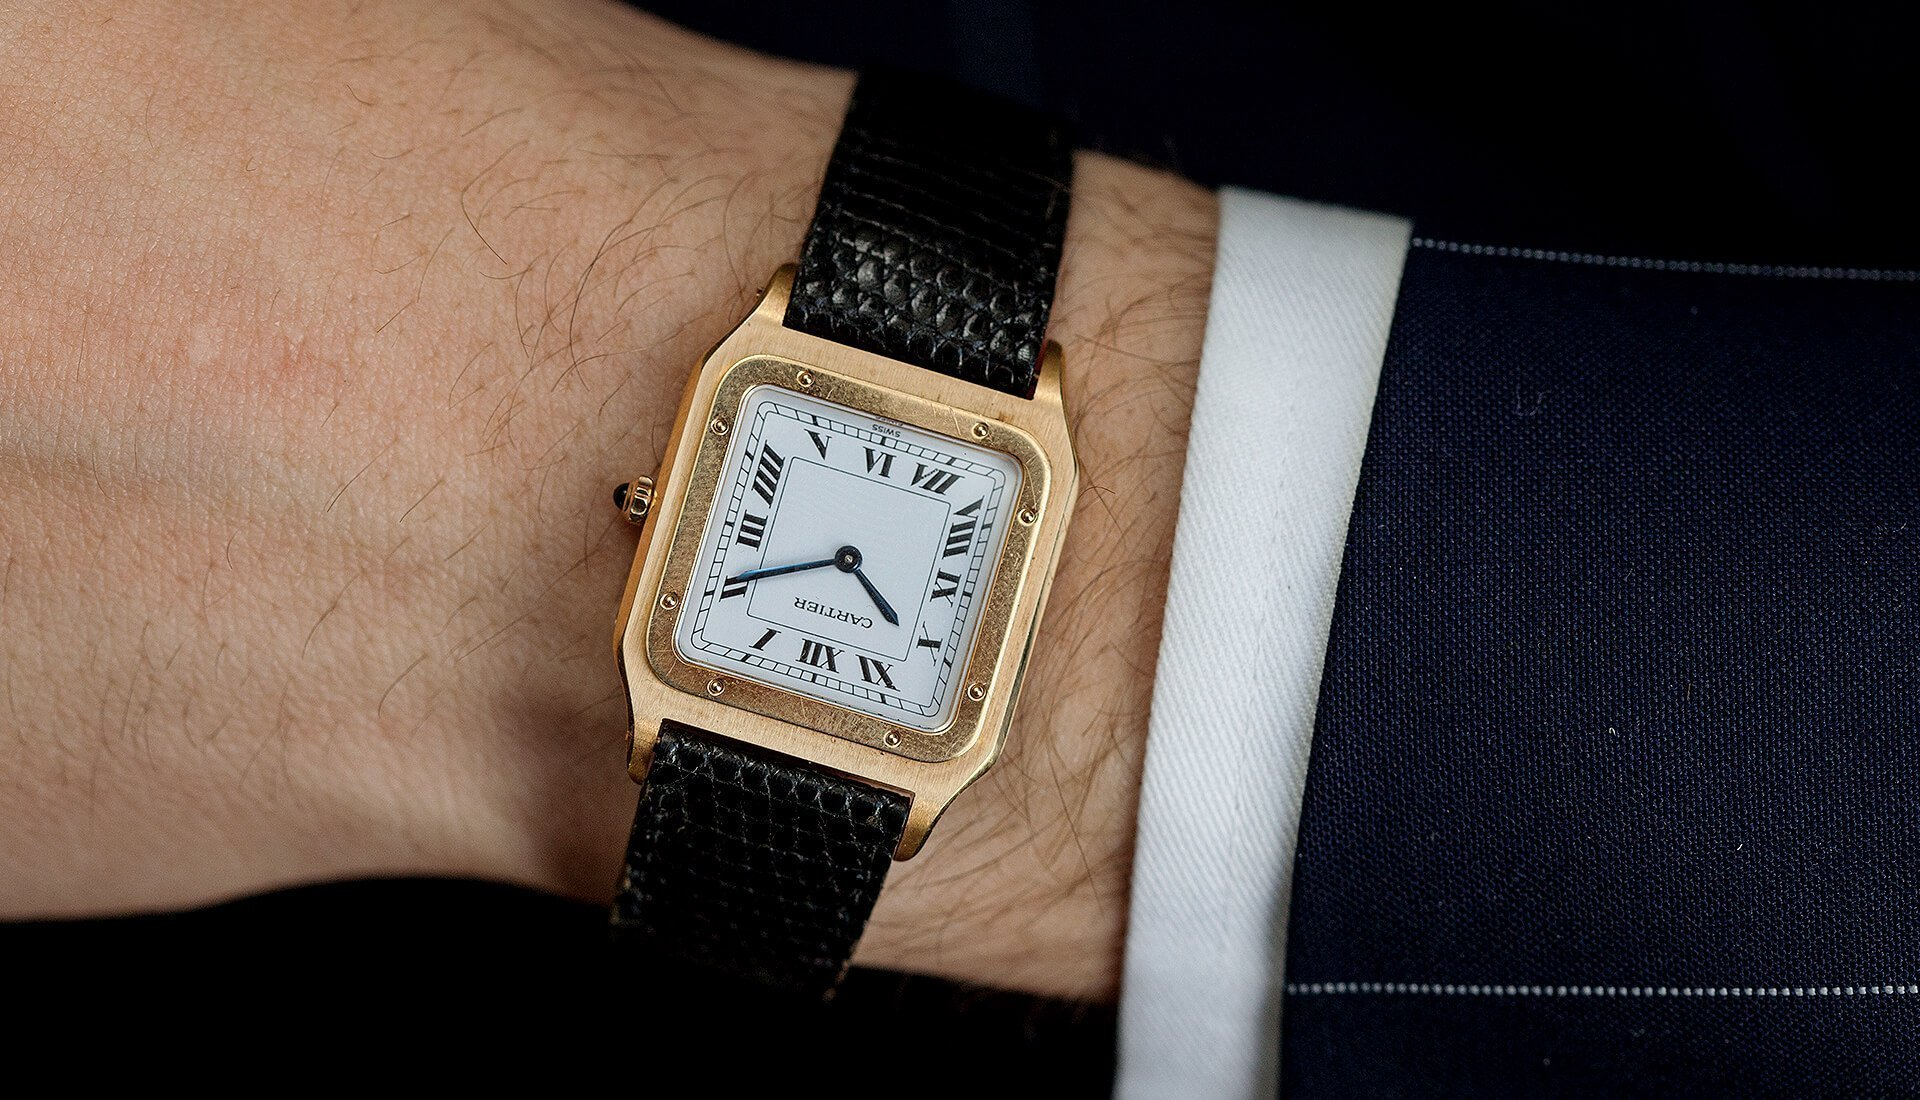 Watch 101: Unlikely Horological Heroes: The Cartier Santos Dumont